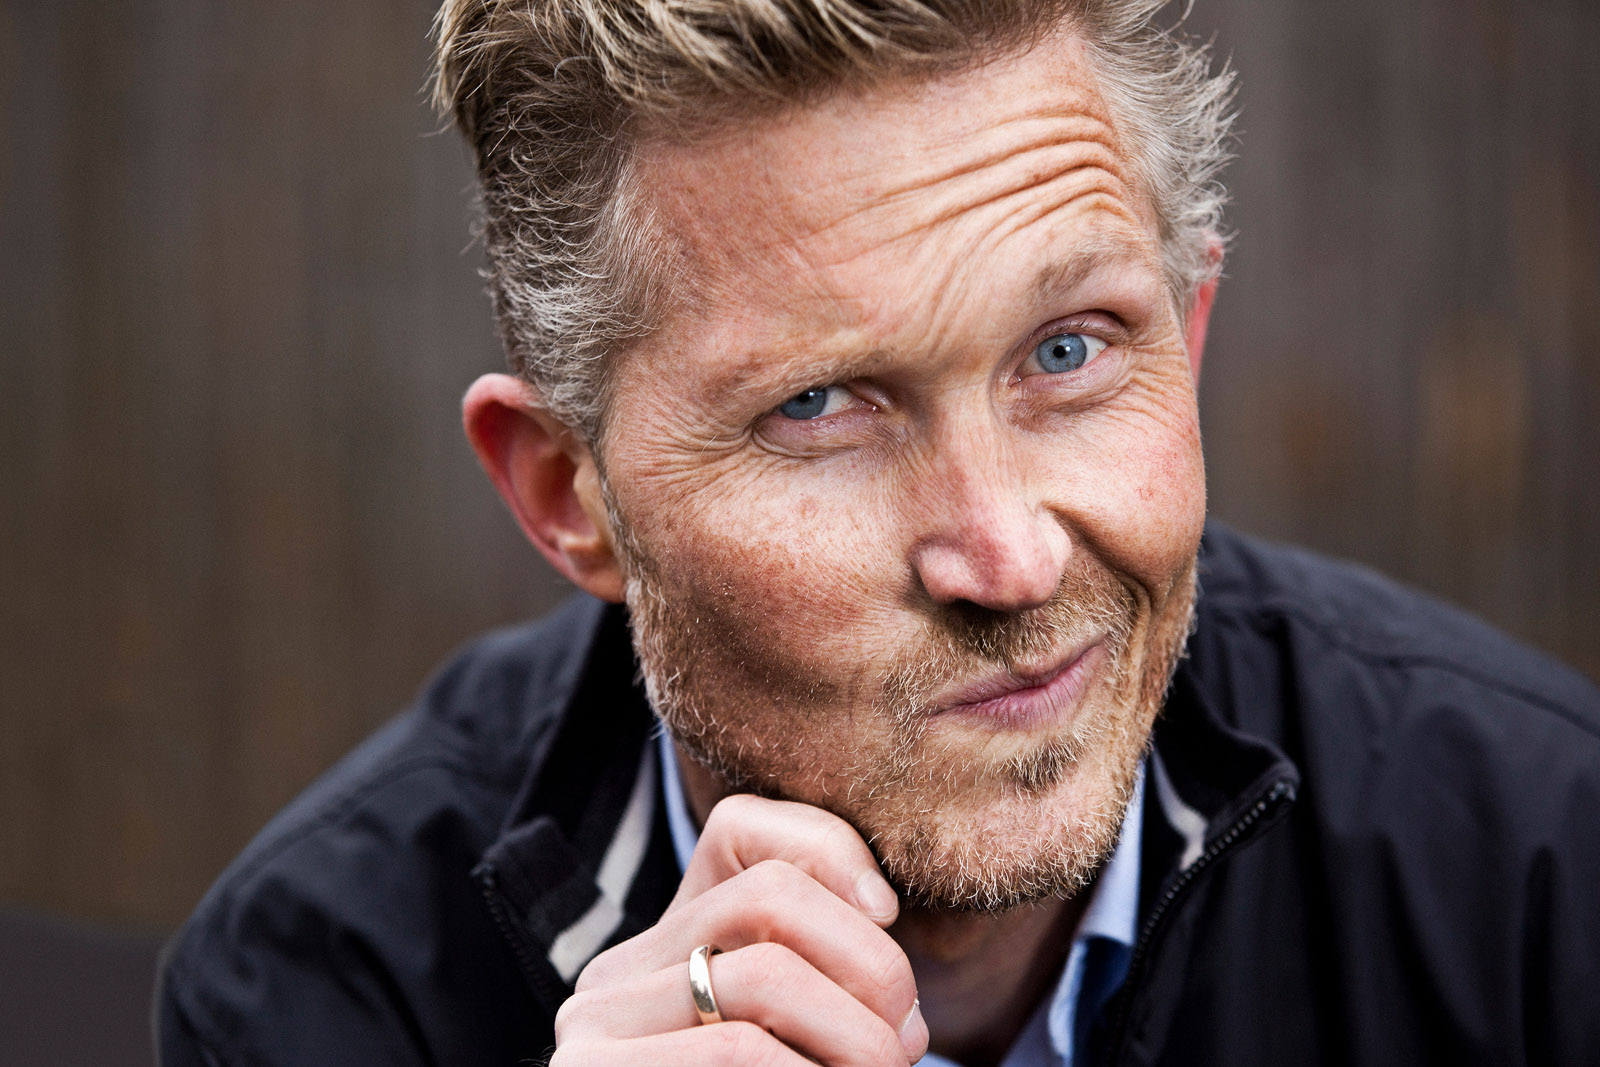 Brian Holm. All rights reserved © Tomas Bertelsen